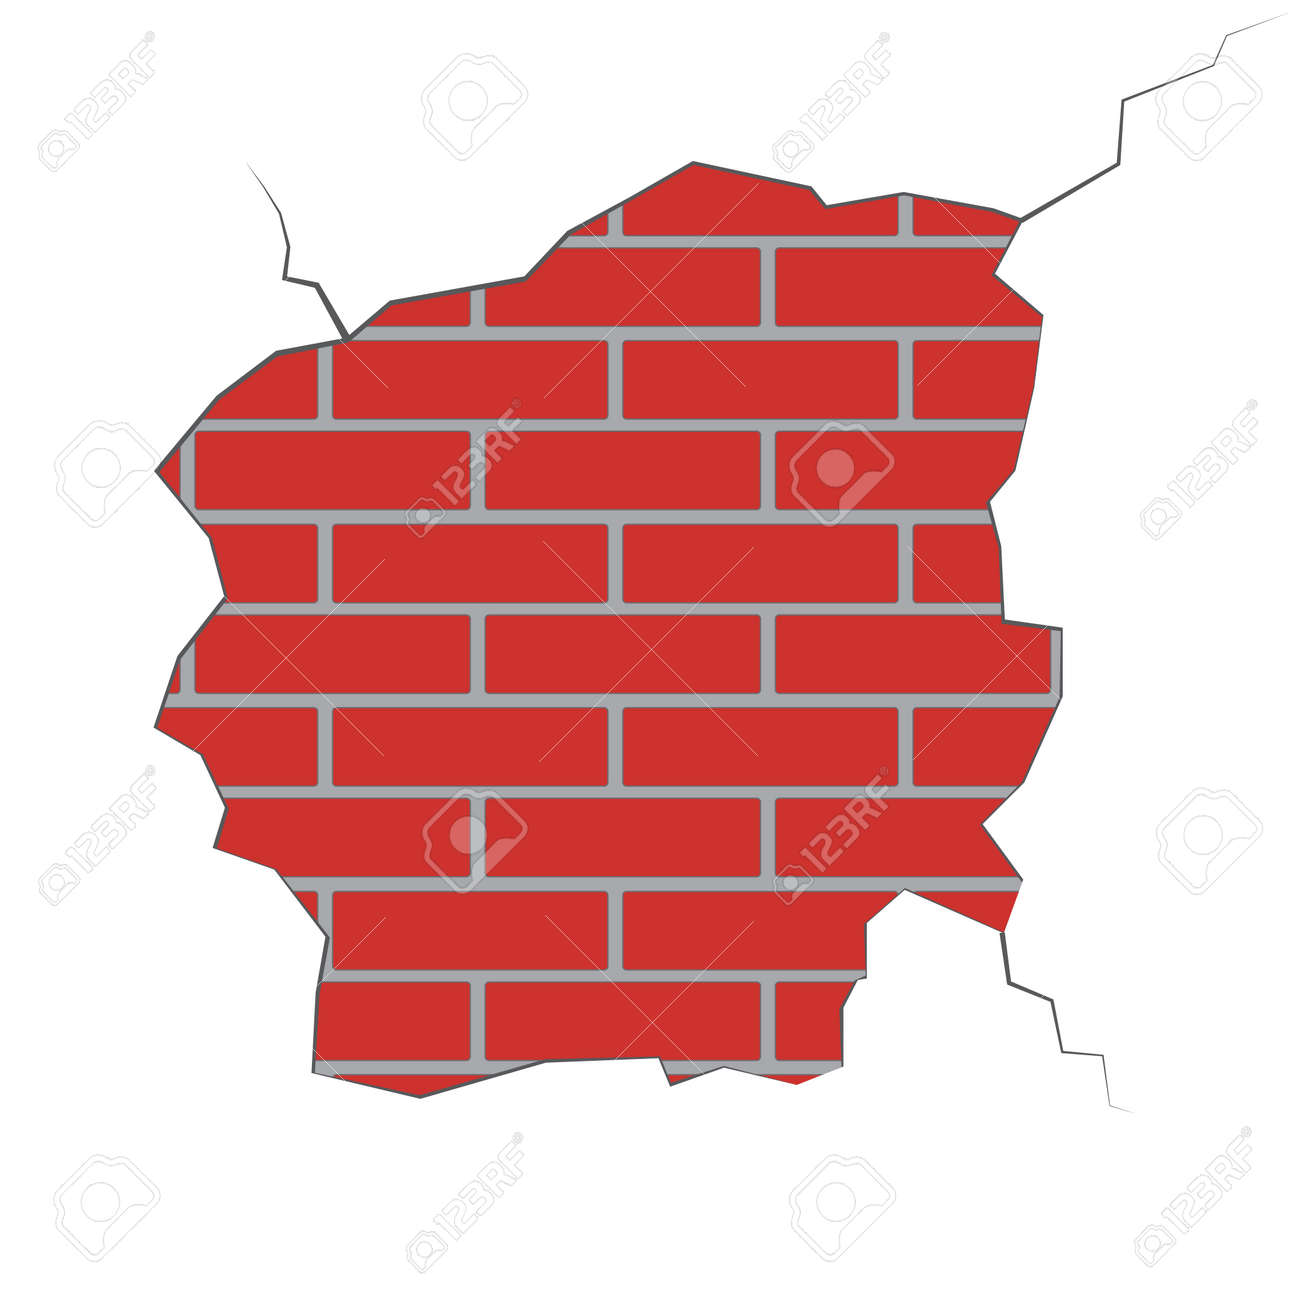 illustration of a brick wall with a broken plaster royalty free rh 123rf com Brick Wall Sketch Brick Wall Sketch